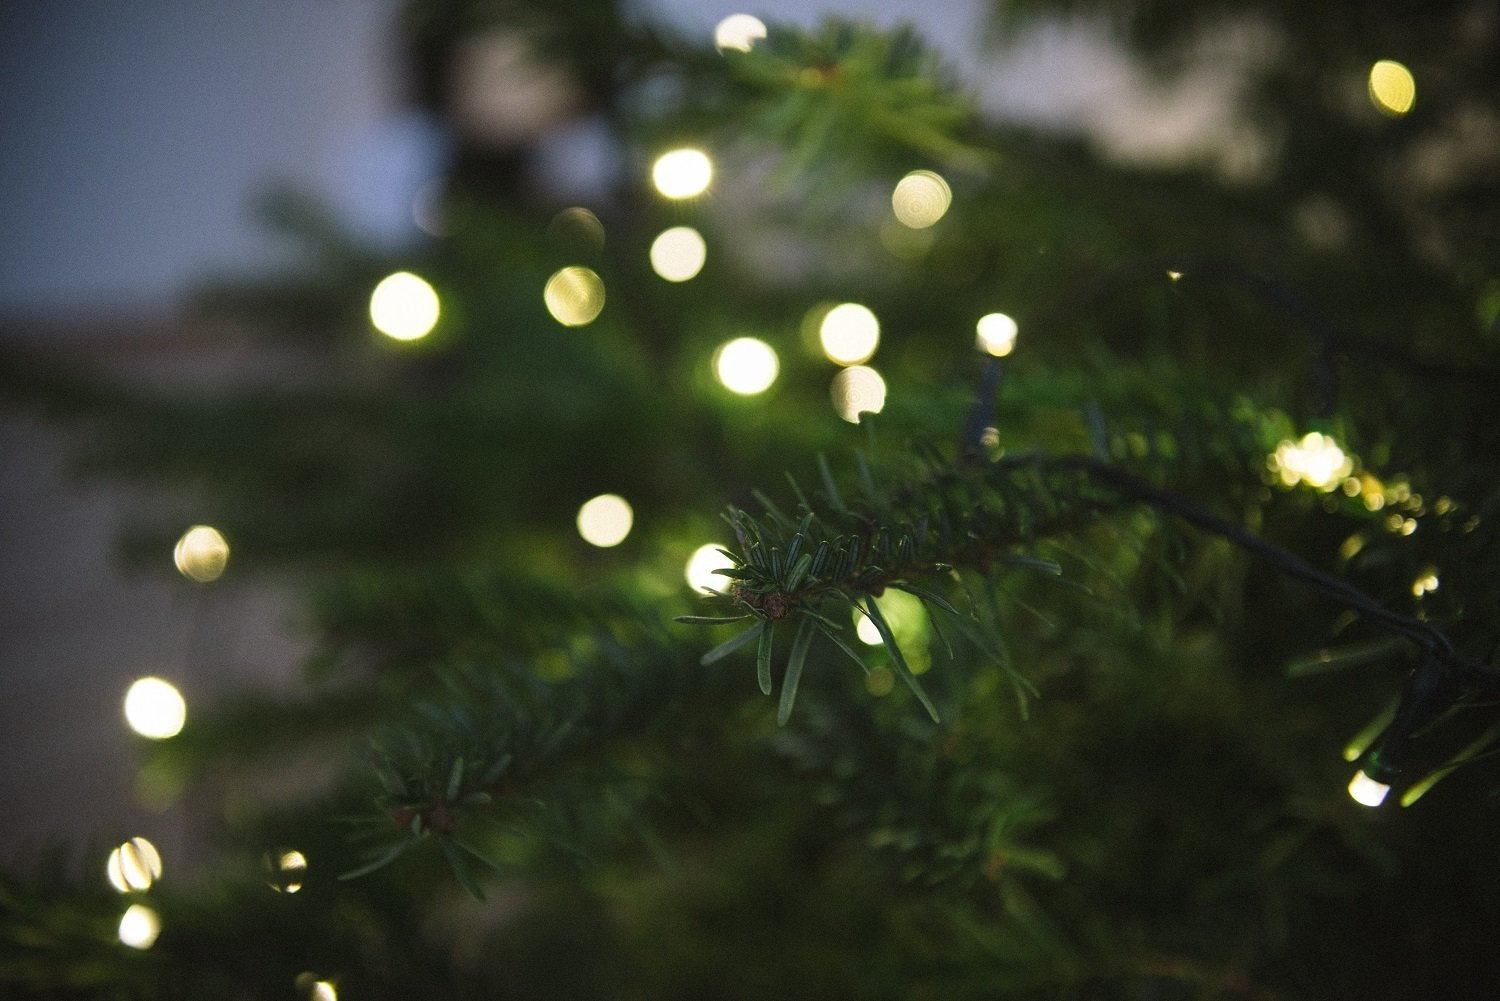 5 ideas to light up your festive season